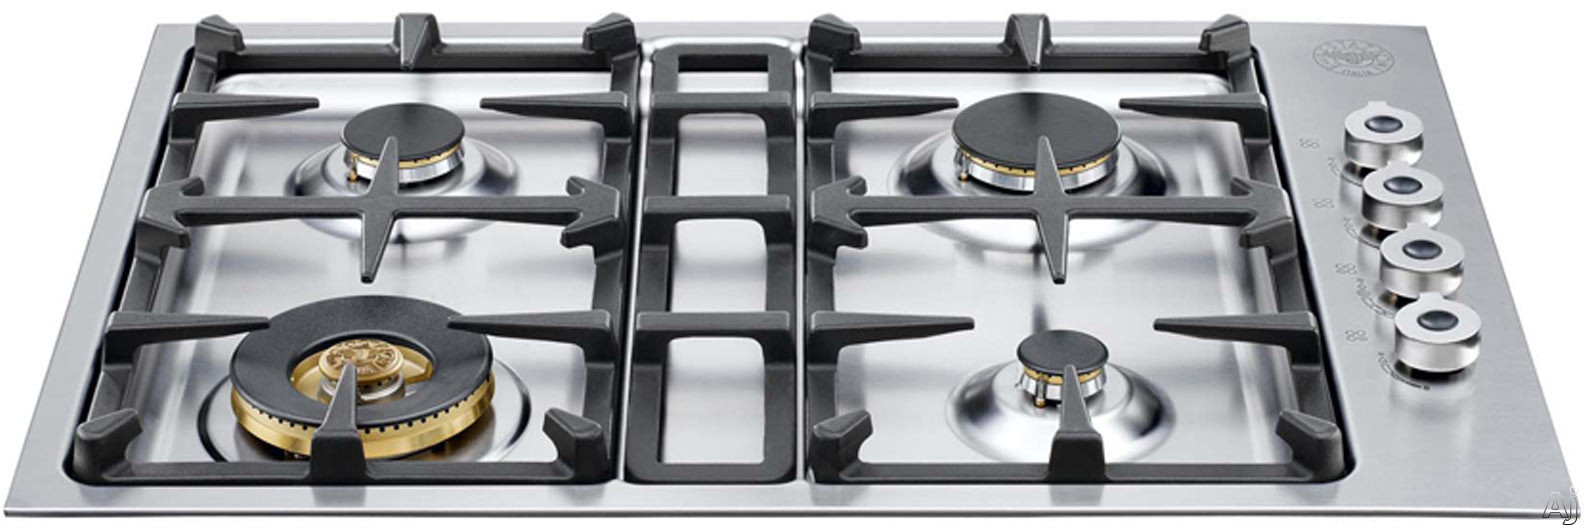 Bertazzoni Professional Series QB30400XLP 30 Inch Gas Cooktop with 4 Sealed Burners, 18,000 BTU Brass Power Burner, Continuous Grates, Electronic Ignition and Low Profile Borders: Liquid Propane